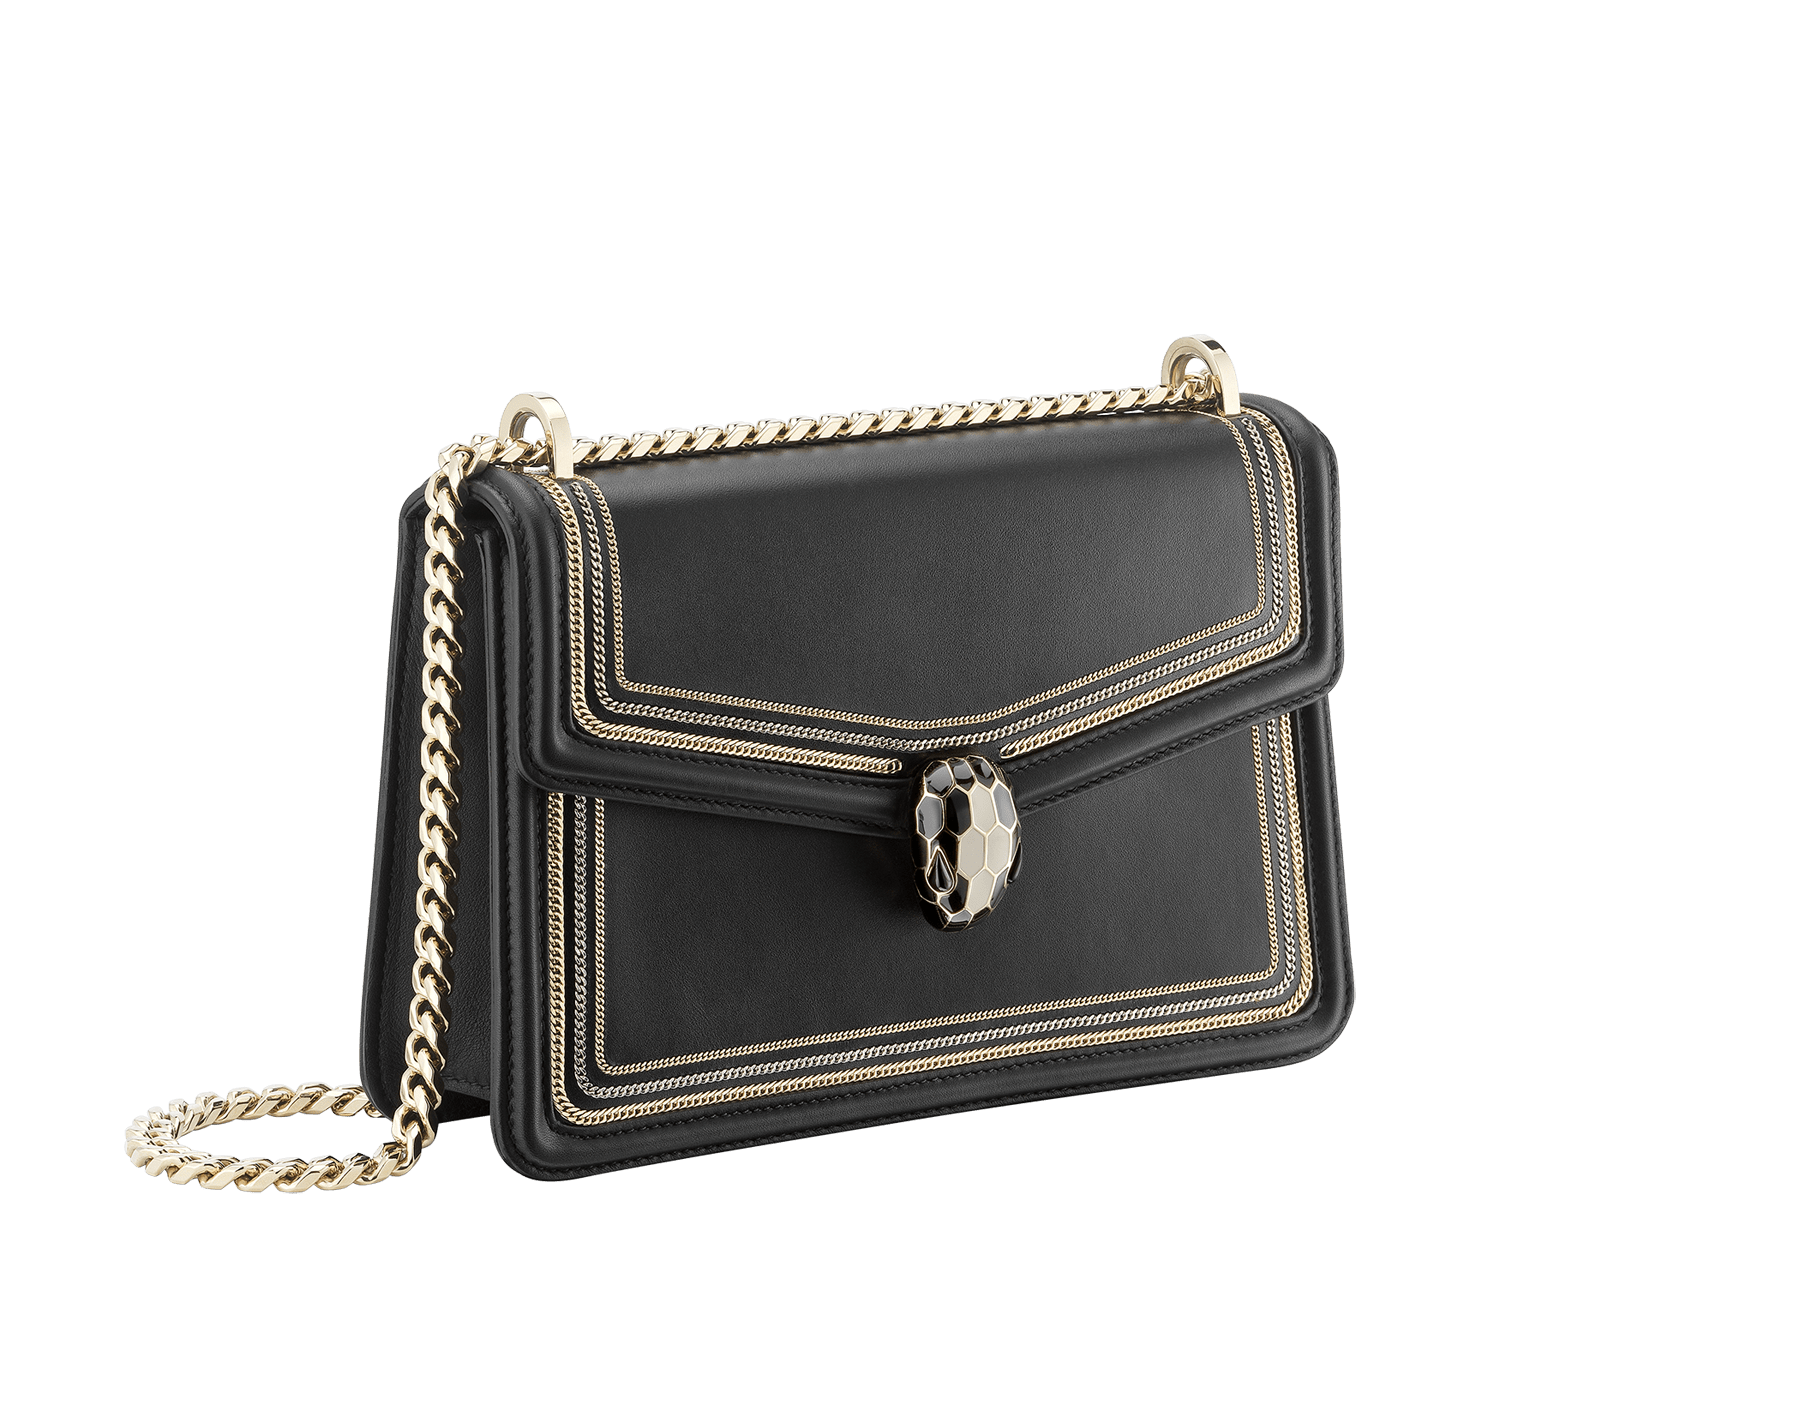 """Serpenti Diamond Blast"" shoulder bag in black smooth calf leather, featuring a 3-Chain motif in light gold and palladium finishing. Iconic snakehead closure in light gold plated brass enriched with black and white enamel and black onyx eyes 287465 image 2"